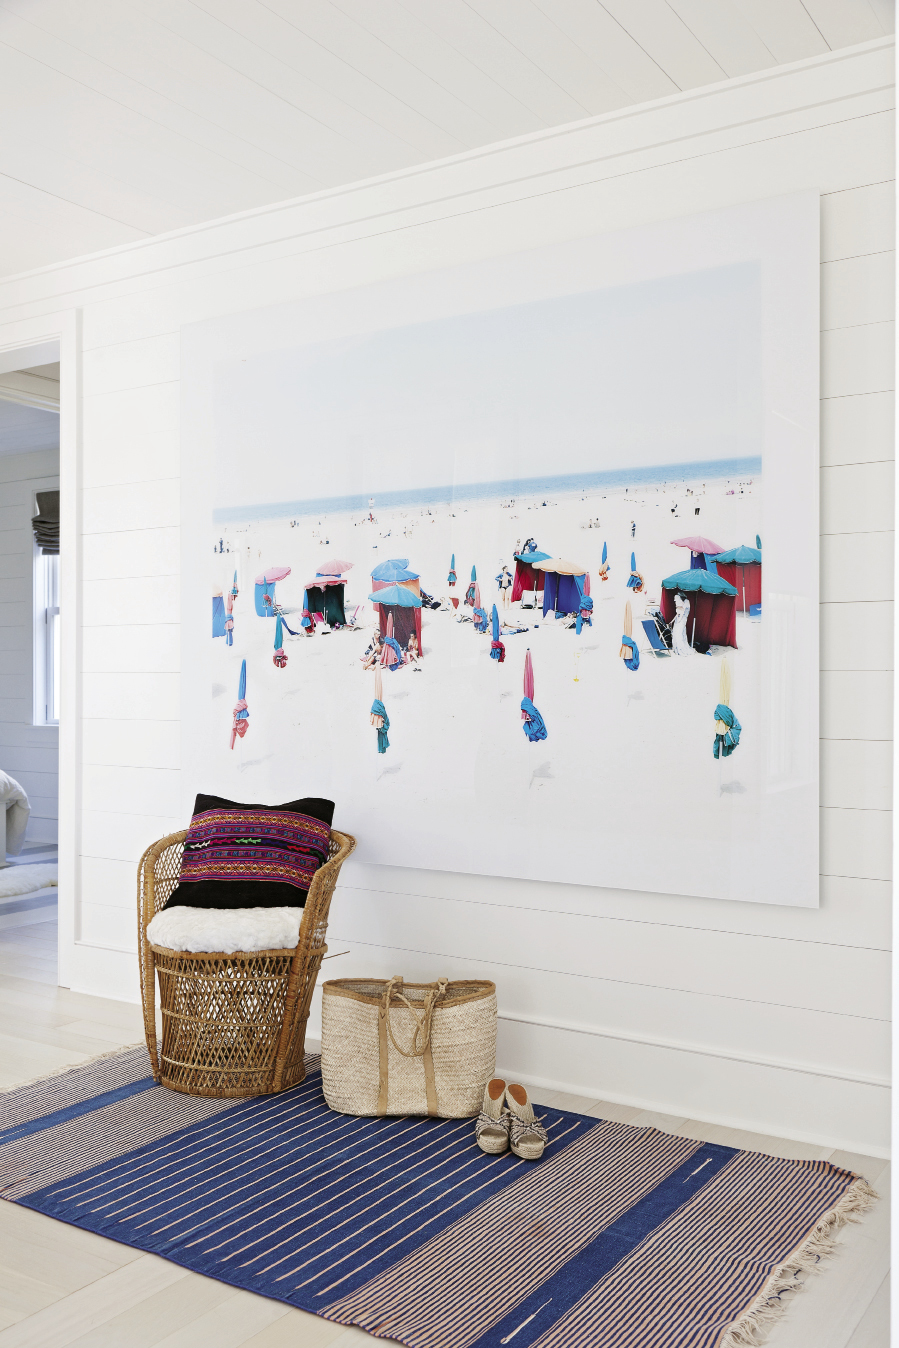 A wall-size panorama by Italian photographer Massimo Vitali makes for captivating beach viewing inside and out.